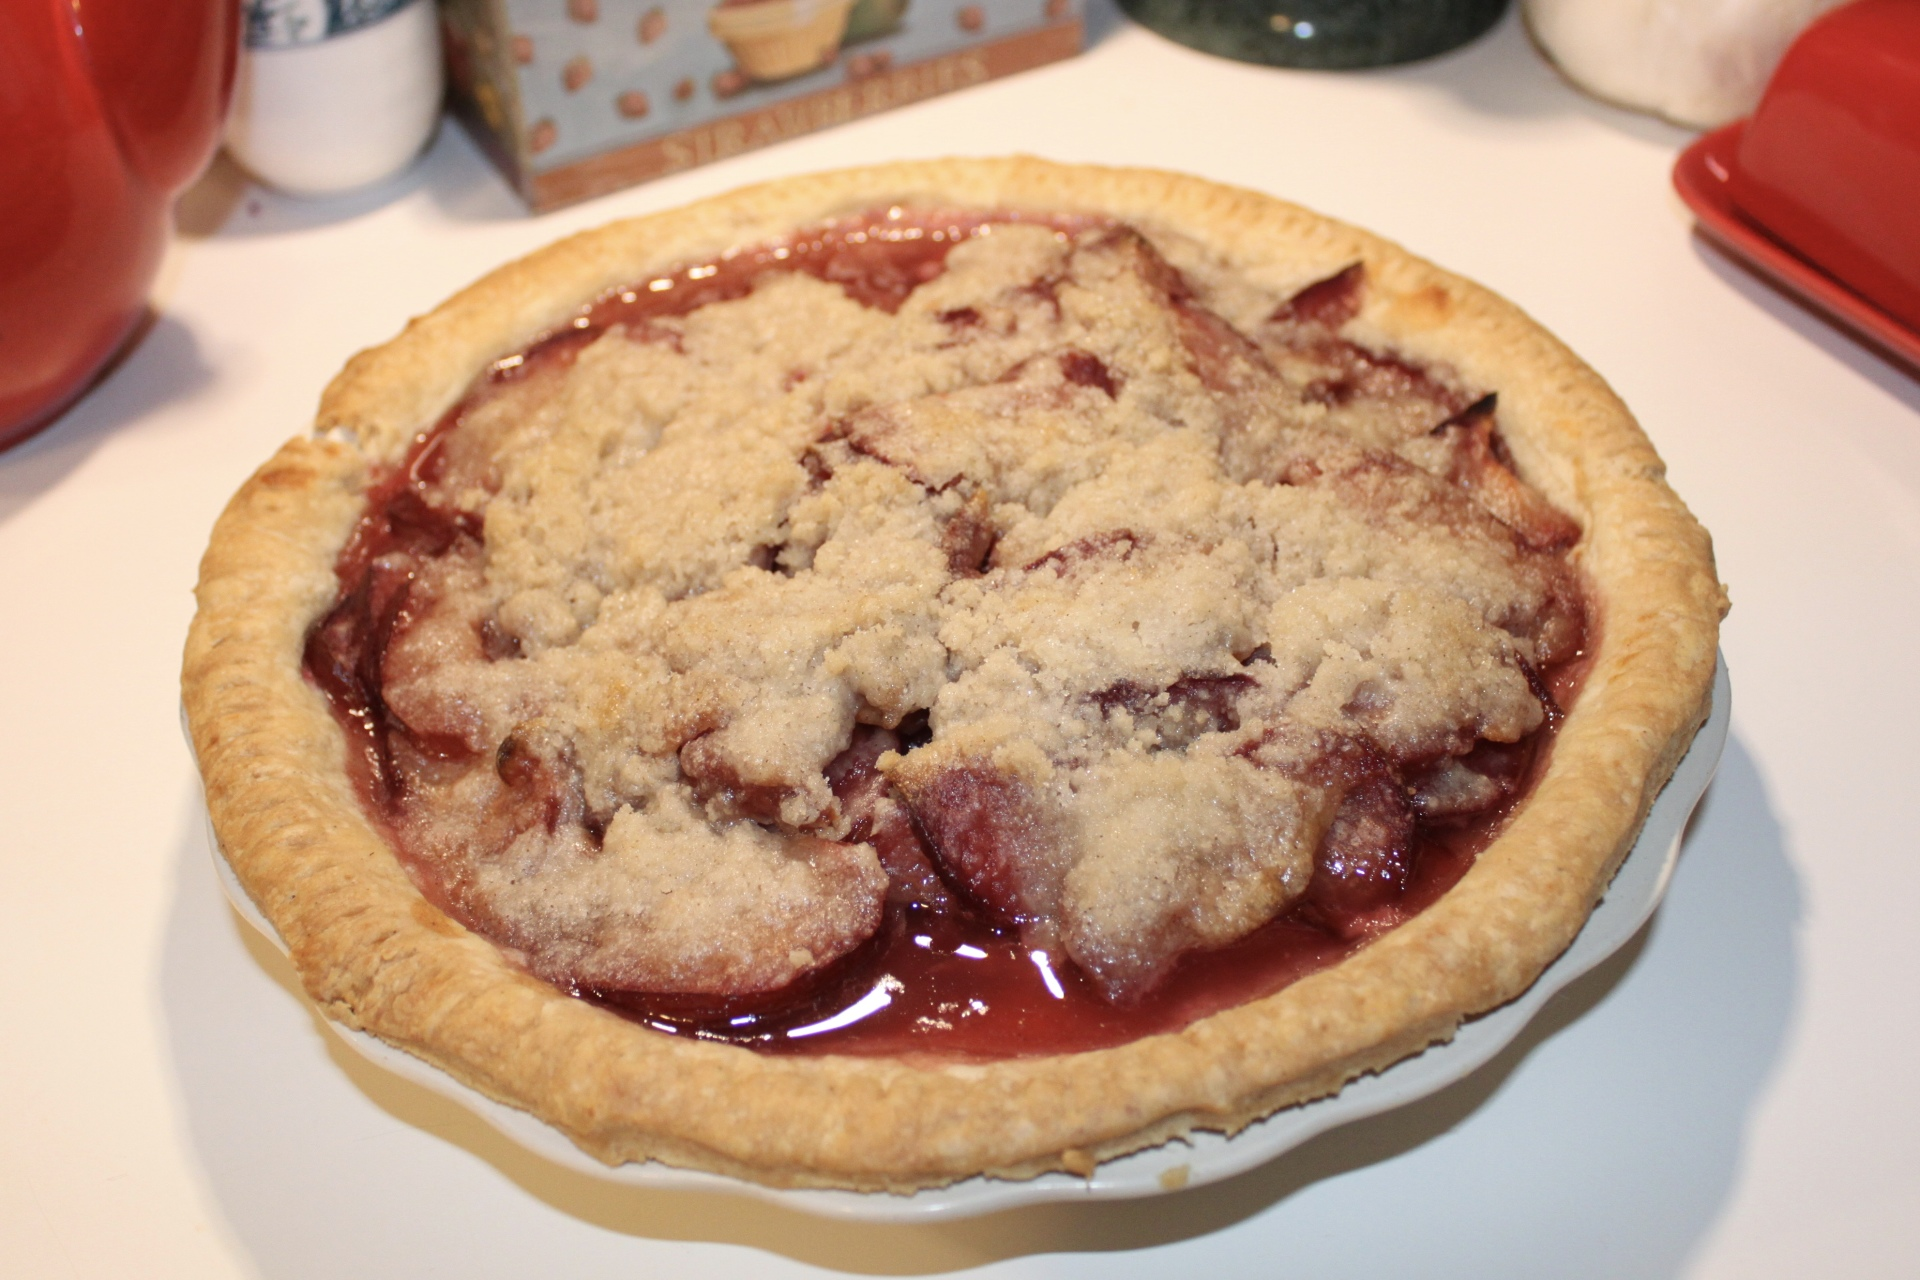 Vegan Plum Pie?